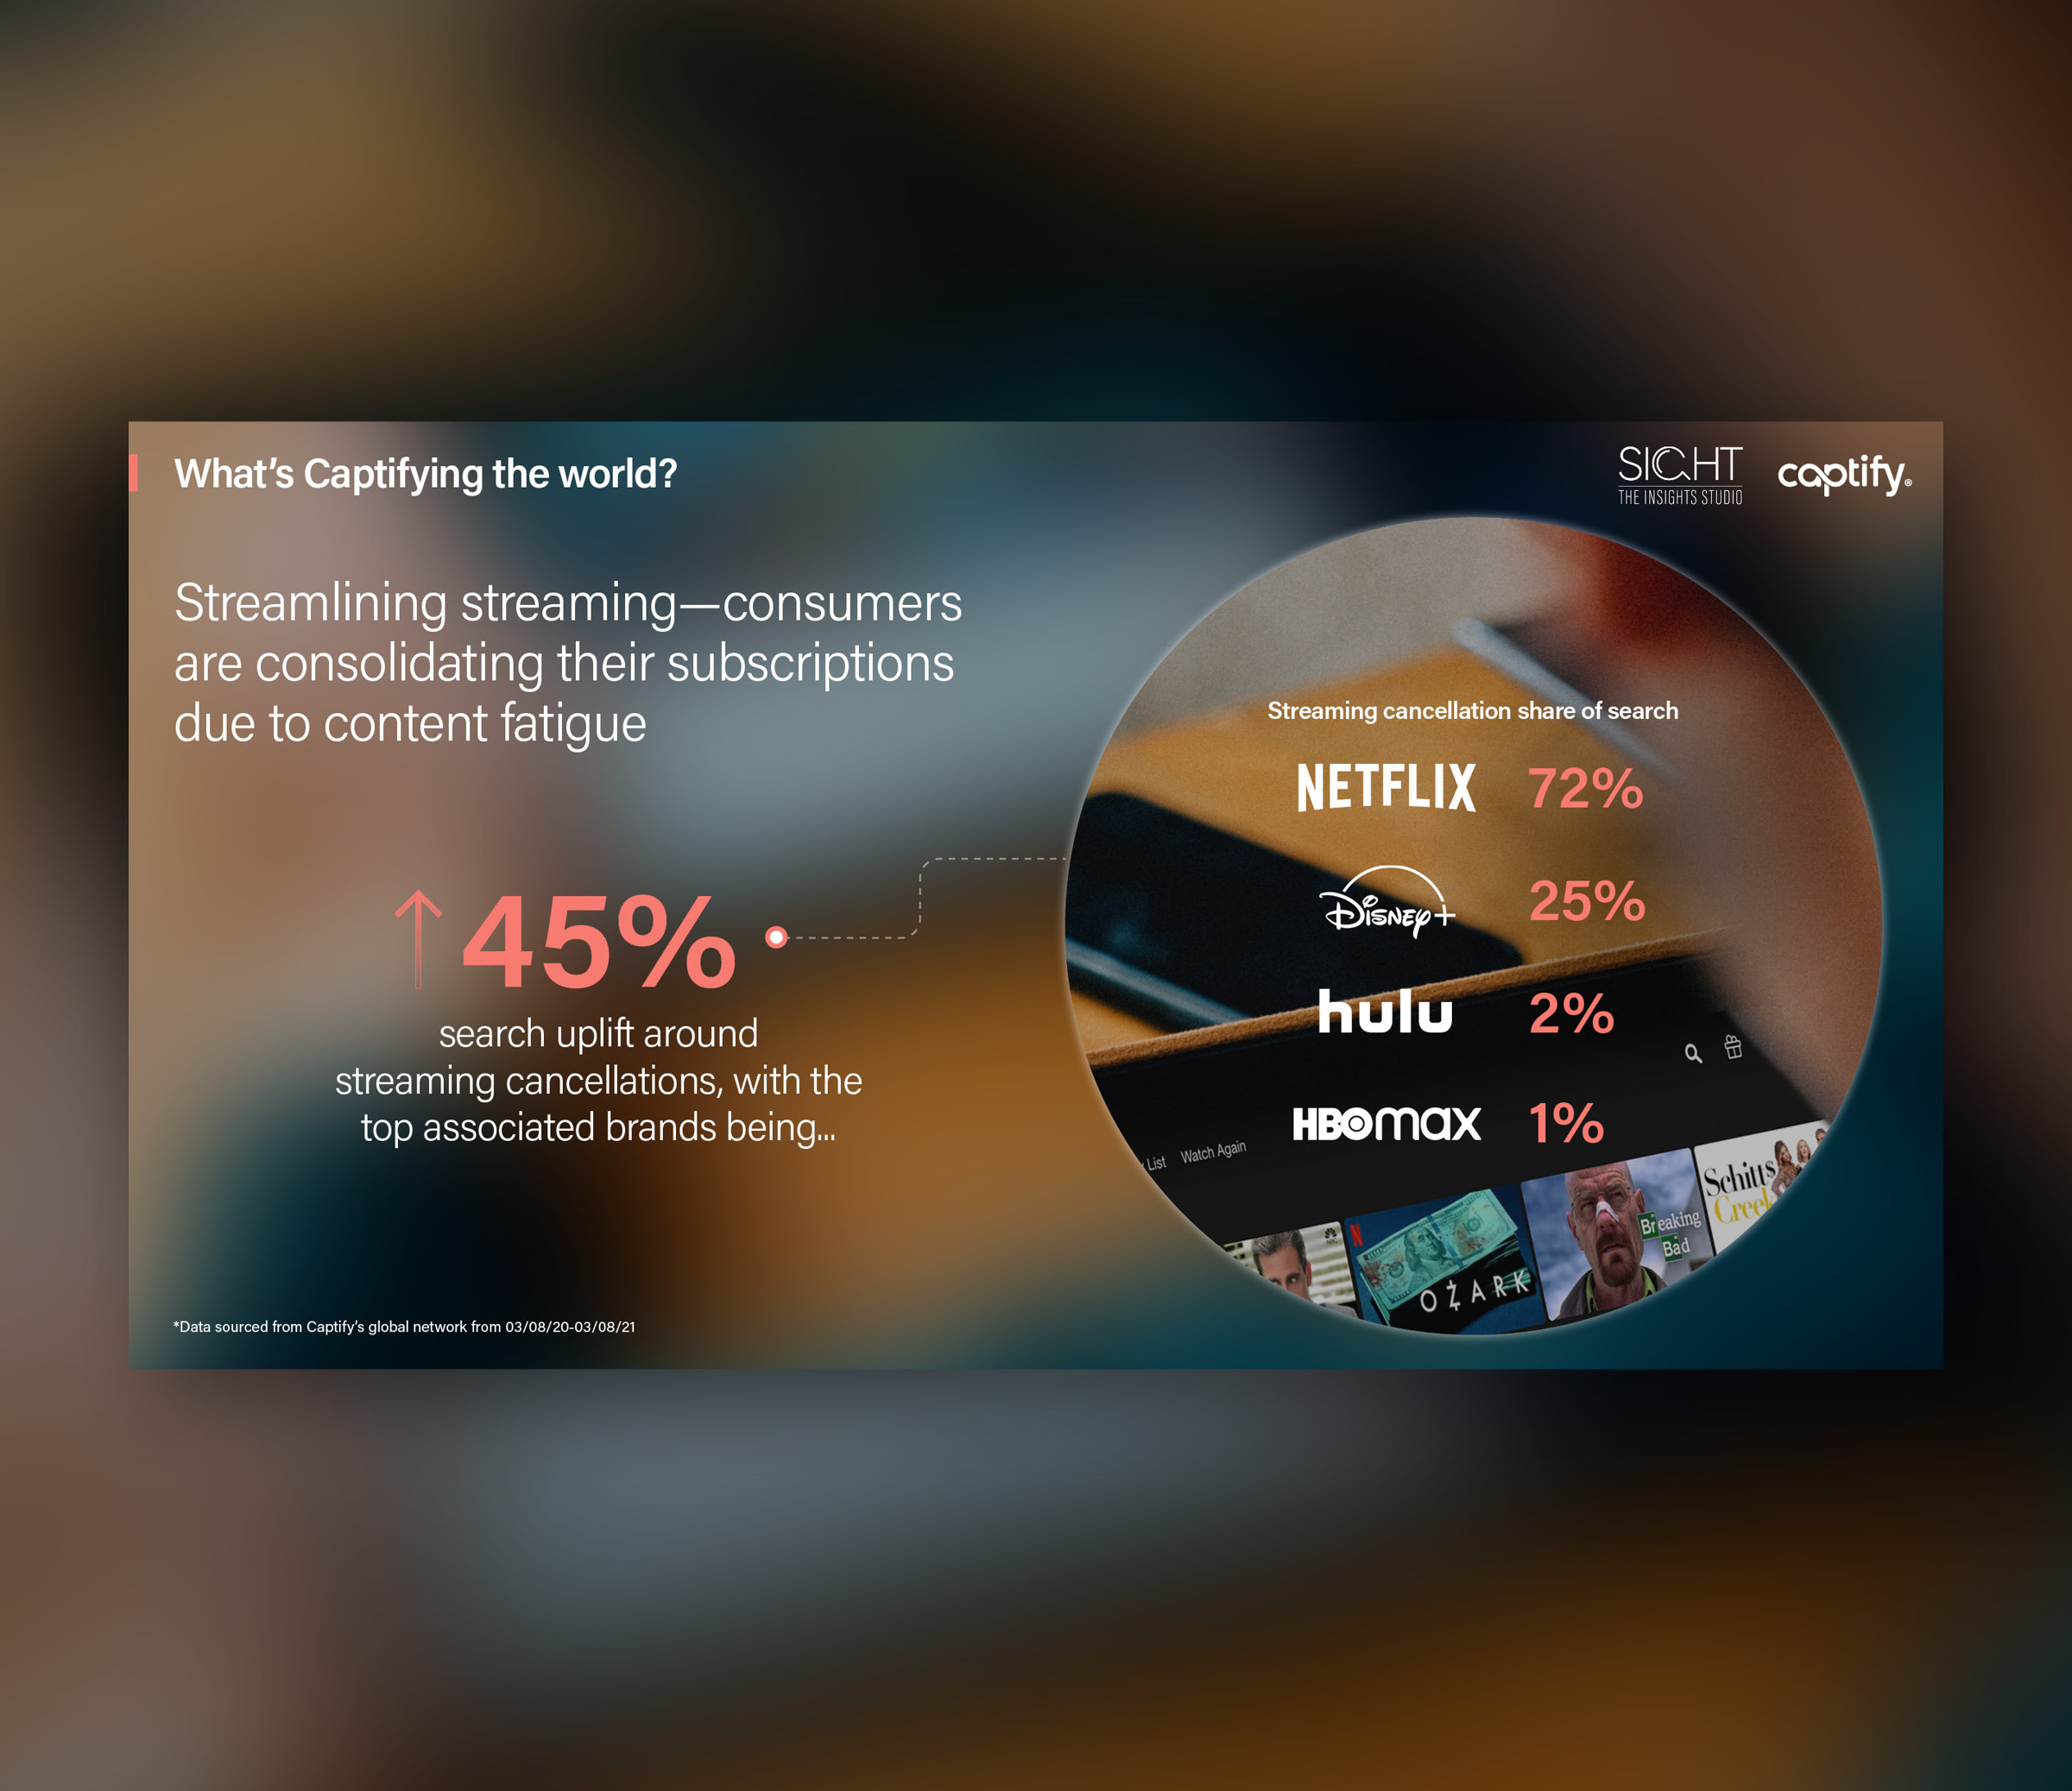 What's Captifying the World: Streamlining streaming—consumers are consolidating their subscriptions due to content fatigue